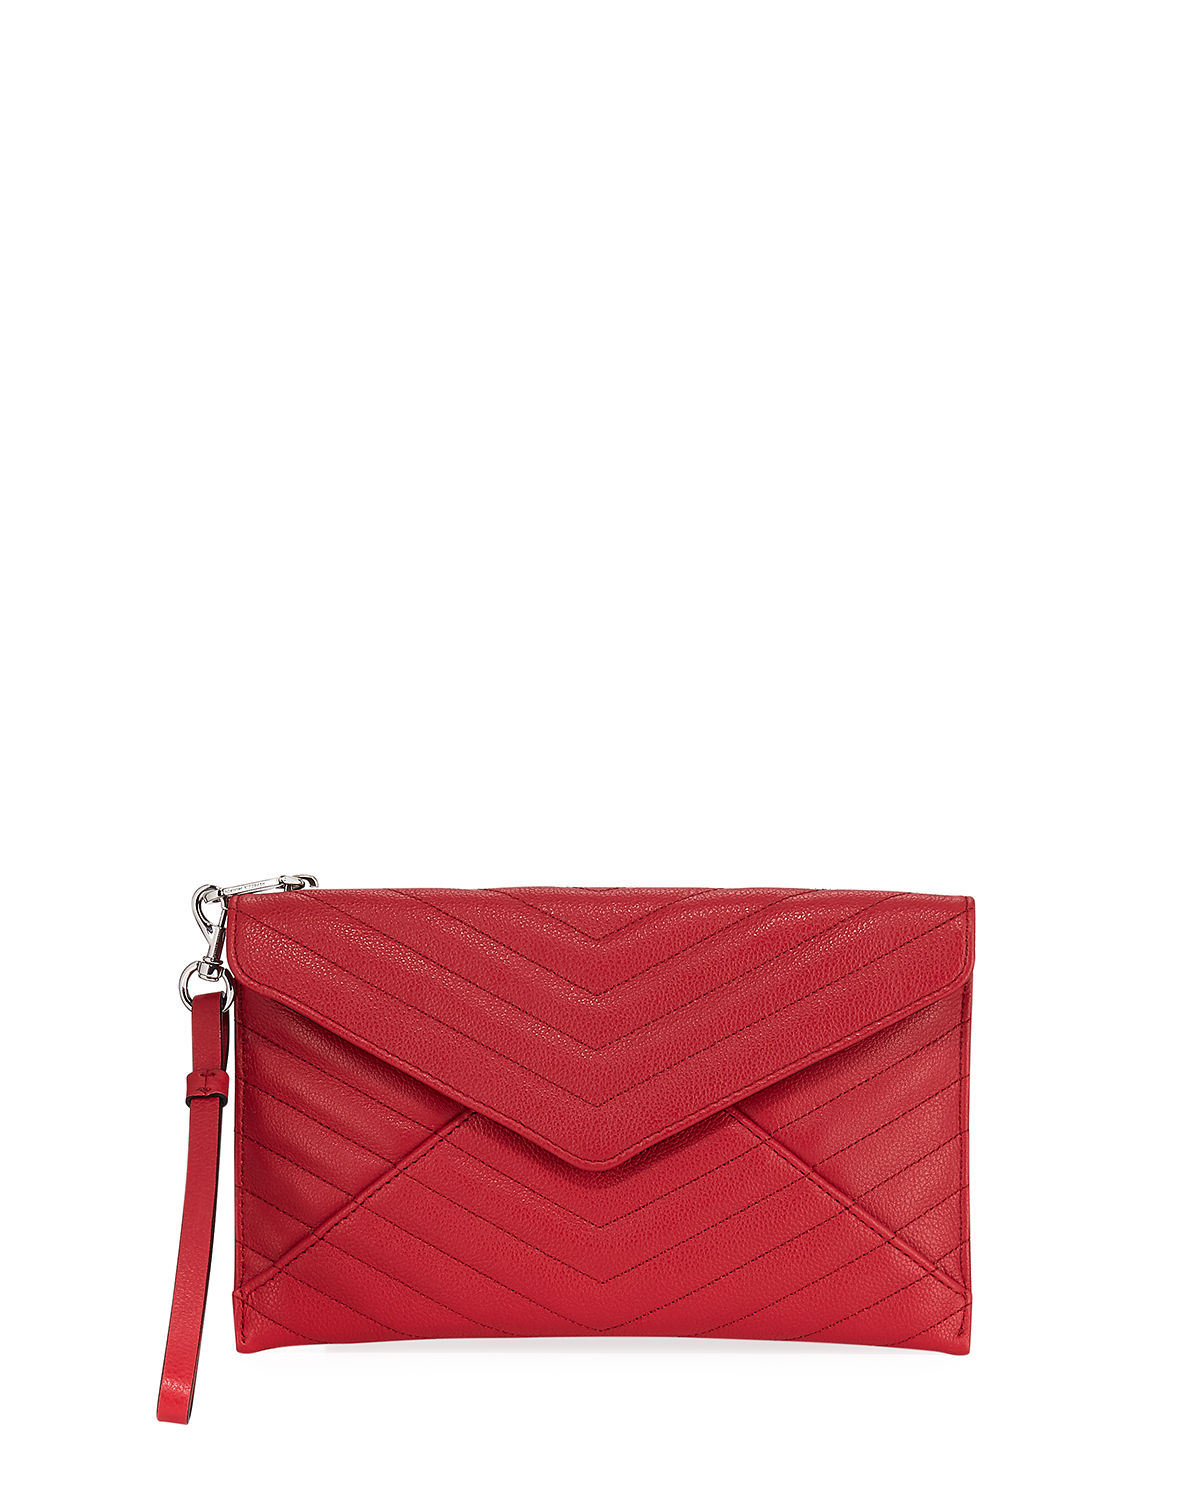 Leo Quilted Leather Wristlet Clutch Bag